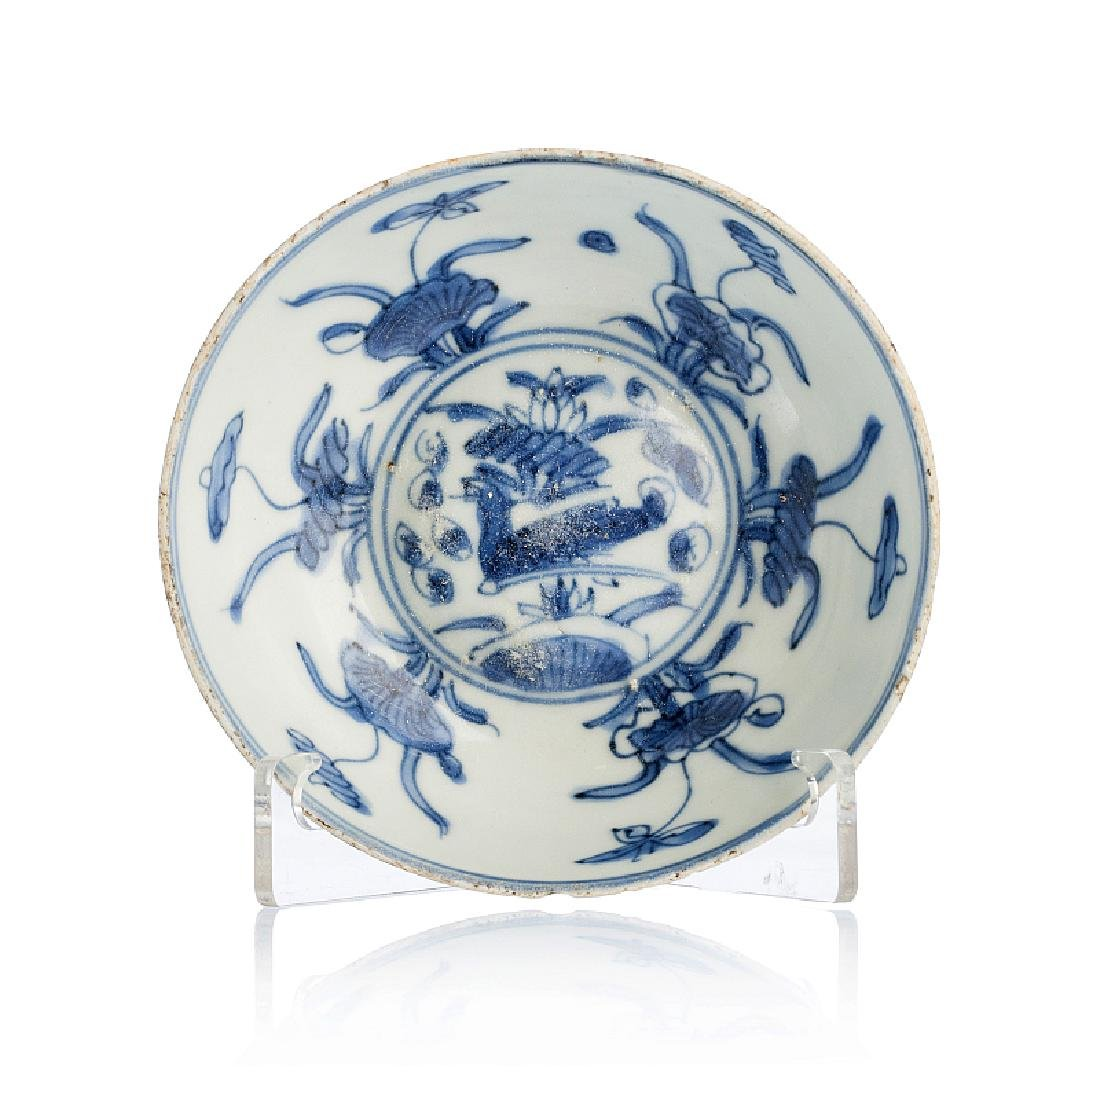 Small bowl in Chinese porcelain, Ming